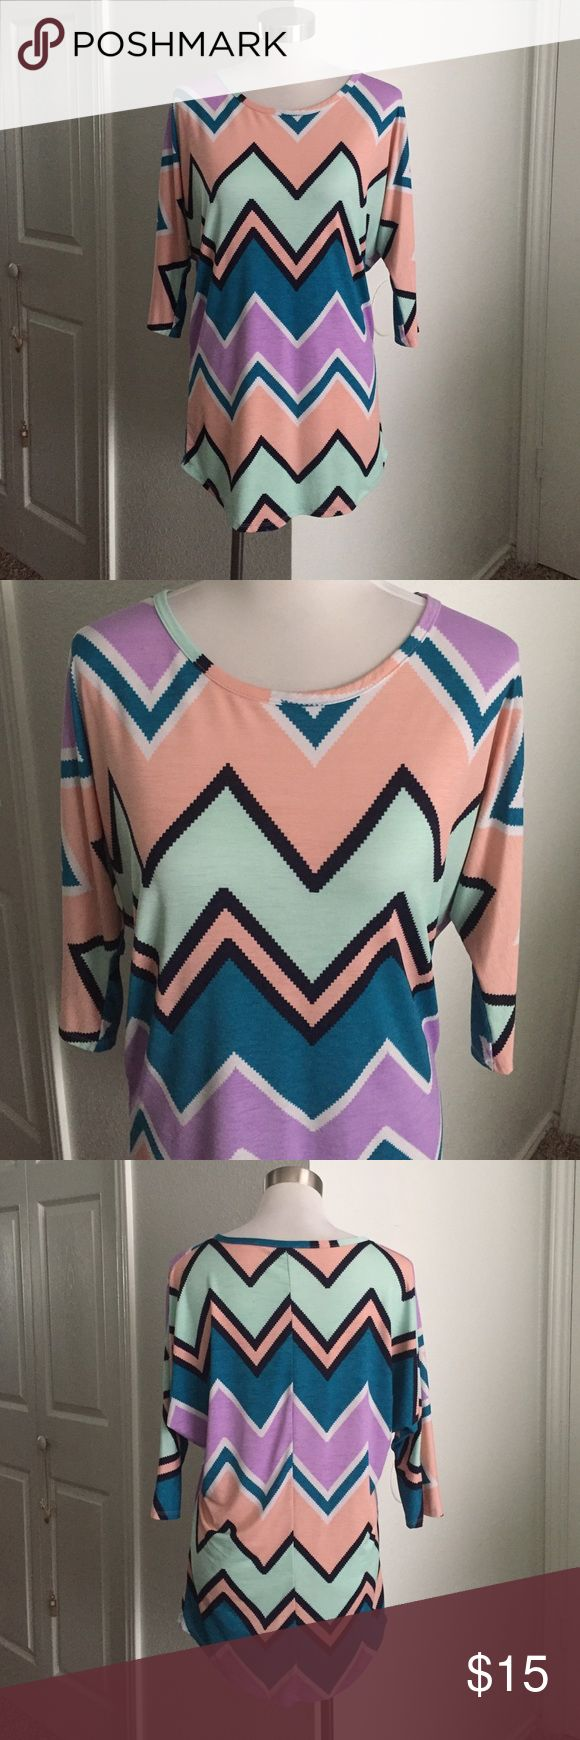 Slouchy Chevron Top Slouchy Chevron top. Slightly piko-style. Very loose and comfortable. Boutique brand. Great for work! Tops